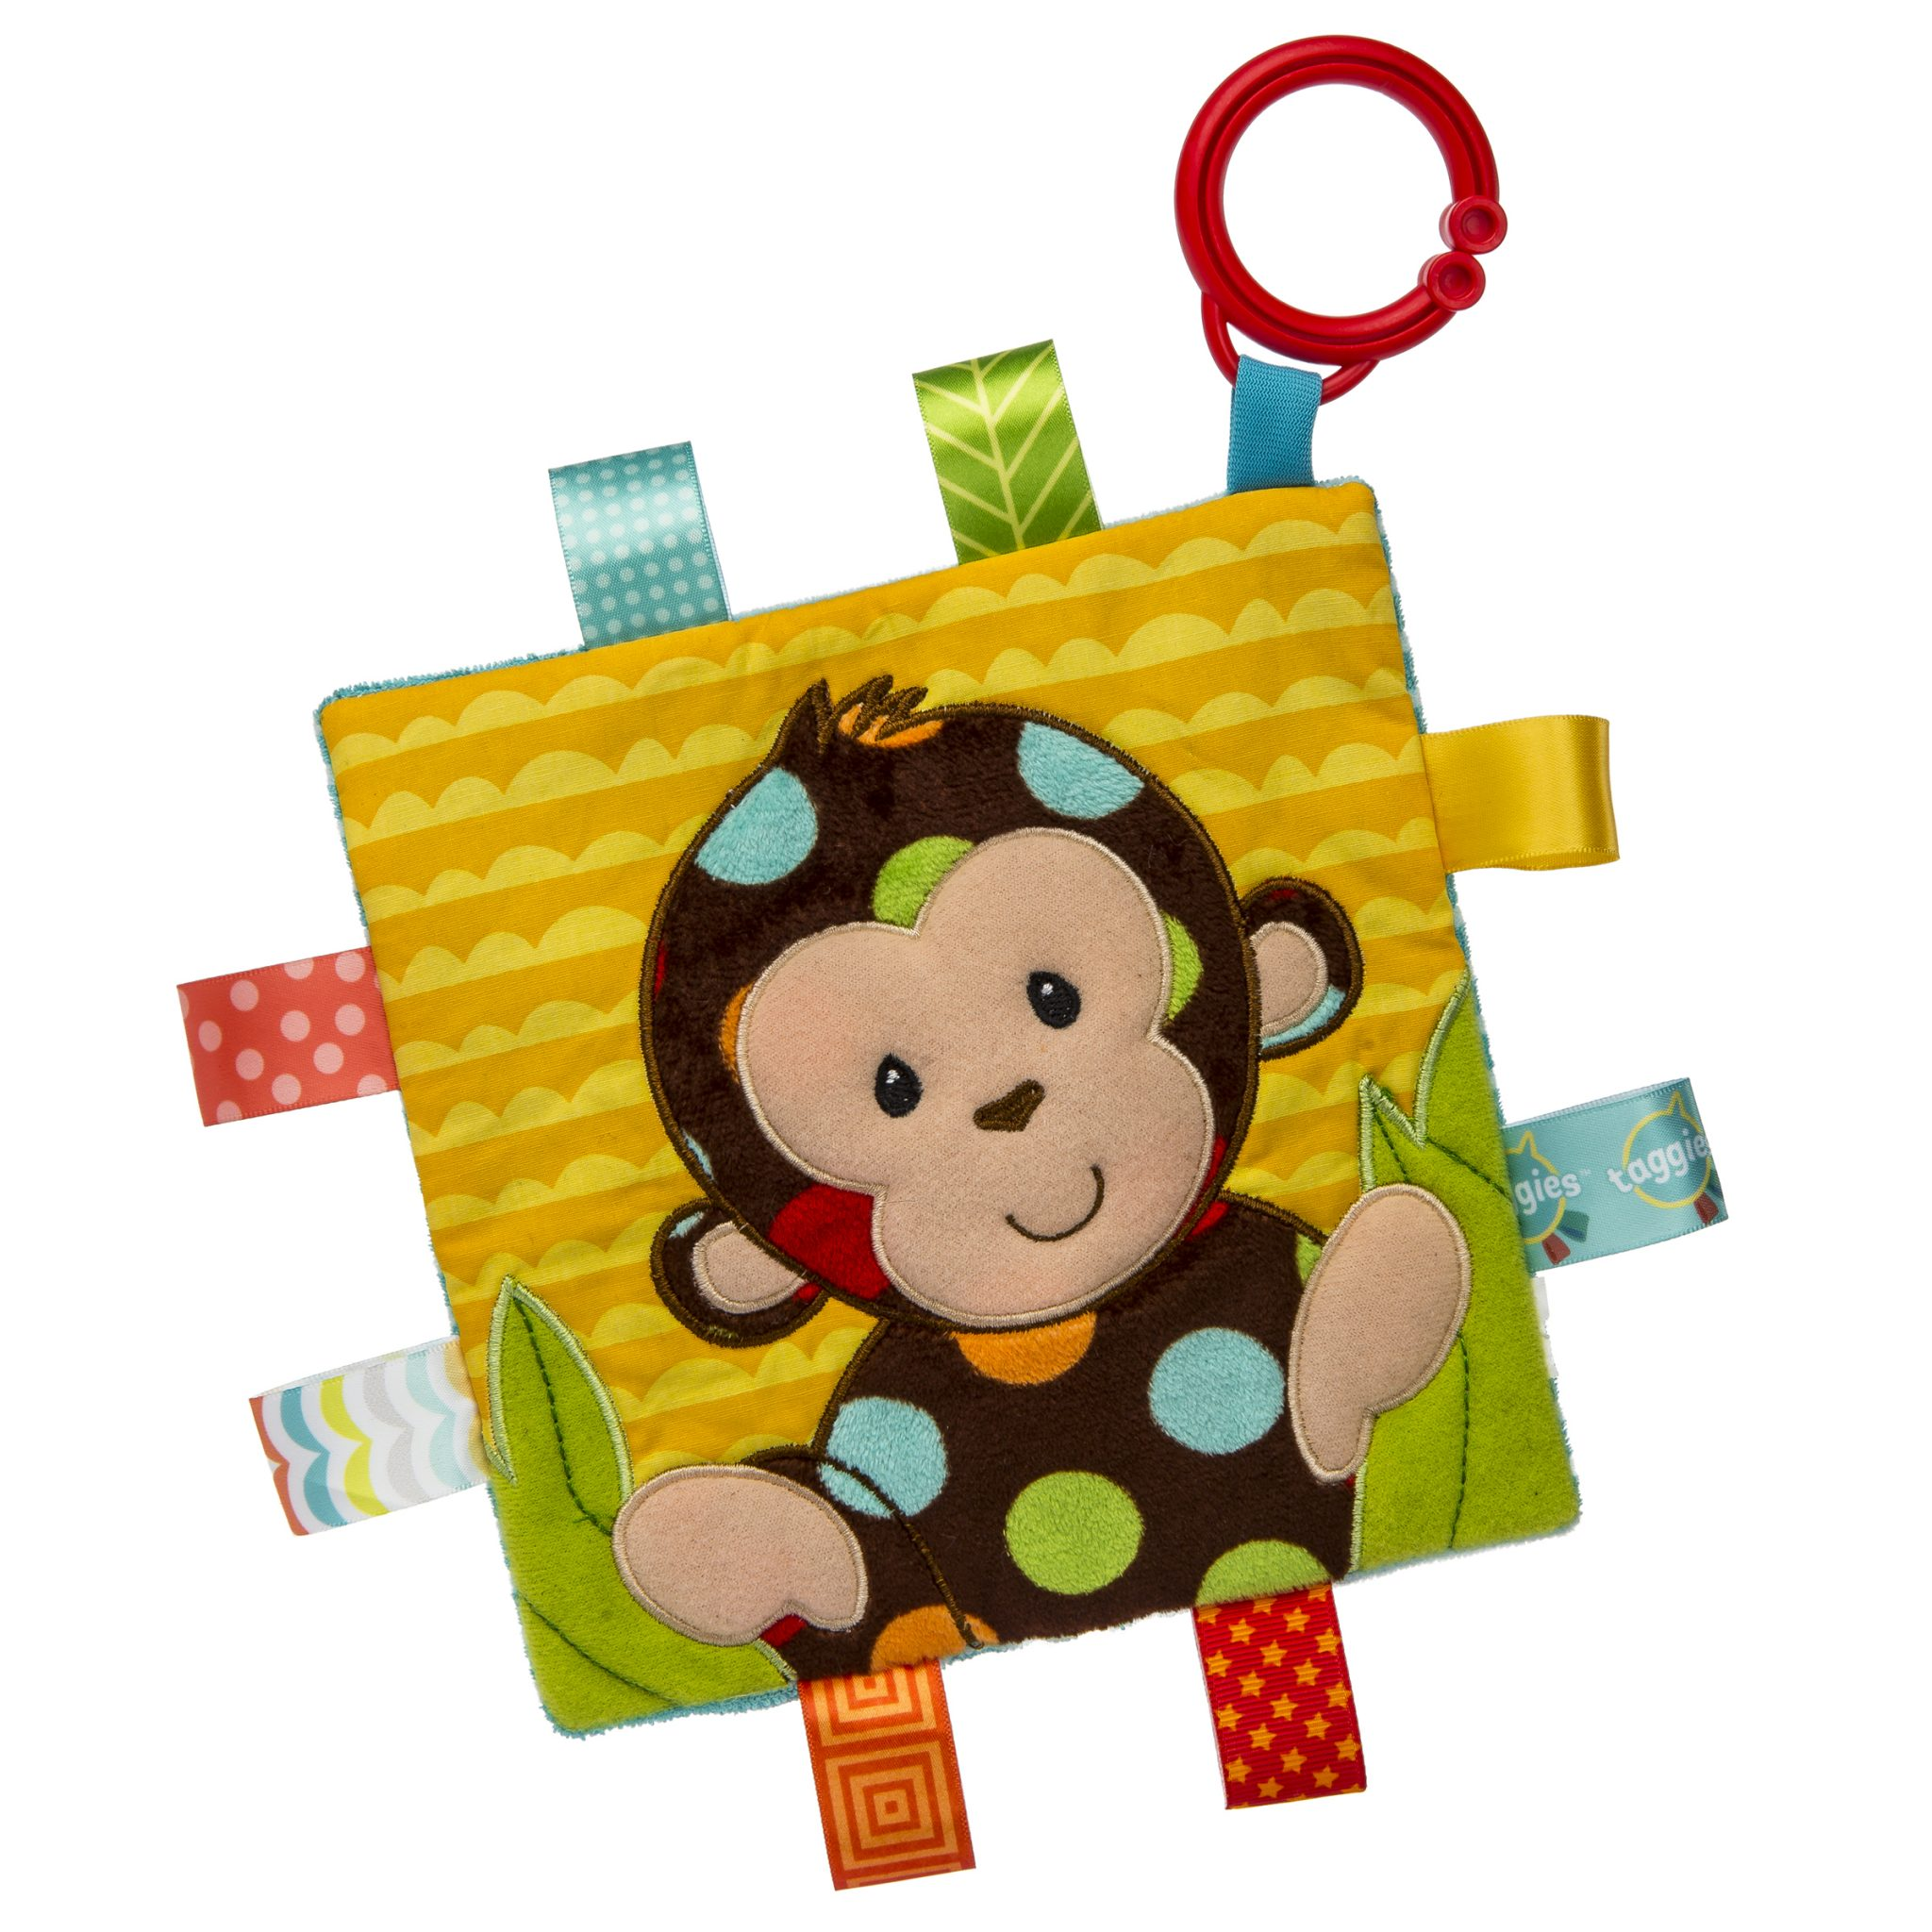 Taggies Crinkle Me Monkey Baby Toy by Mary Meyer